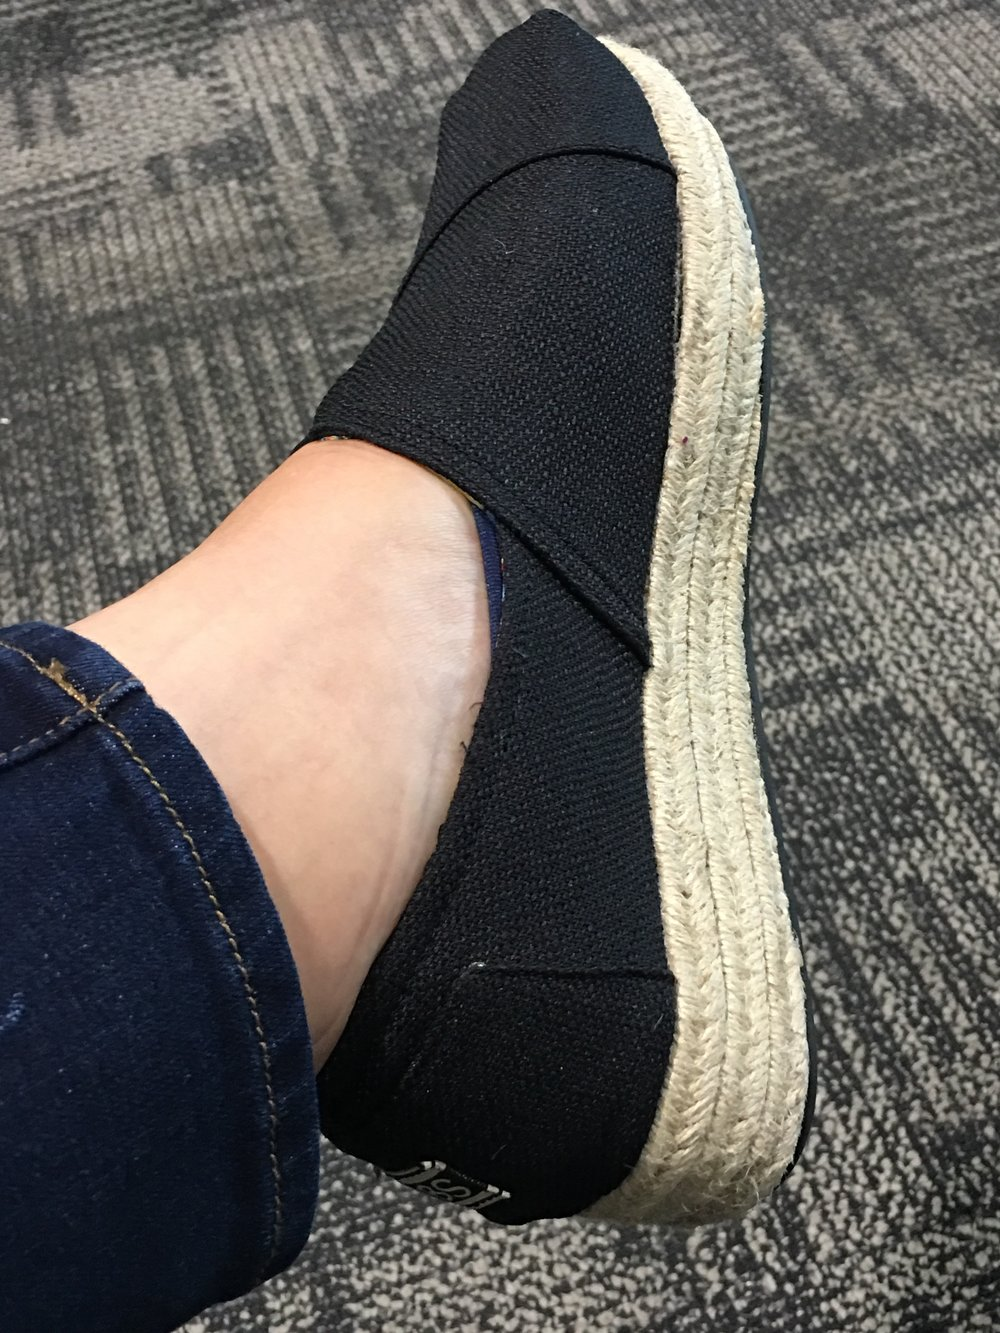 During a layover in Detroit coming home from vacay. Even at the end of two weeks of walking, my feet still loved these Skechers!